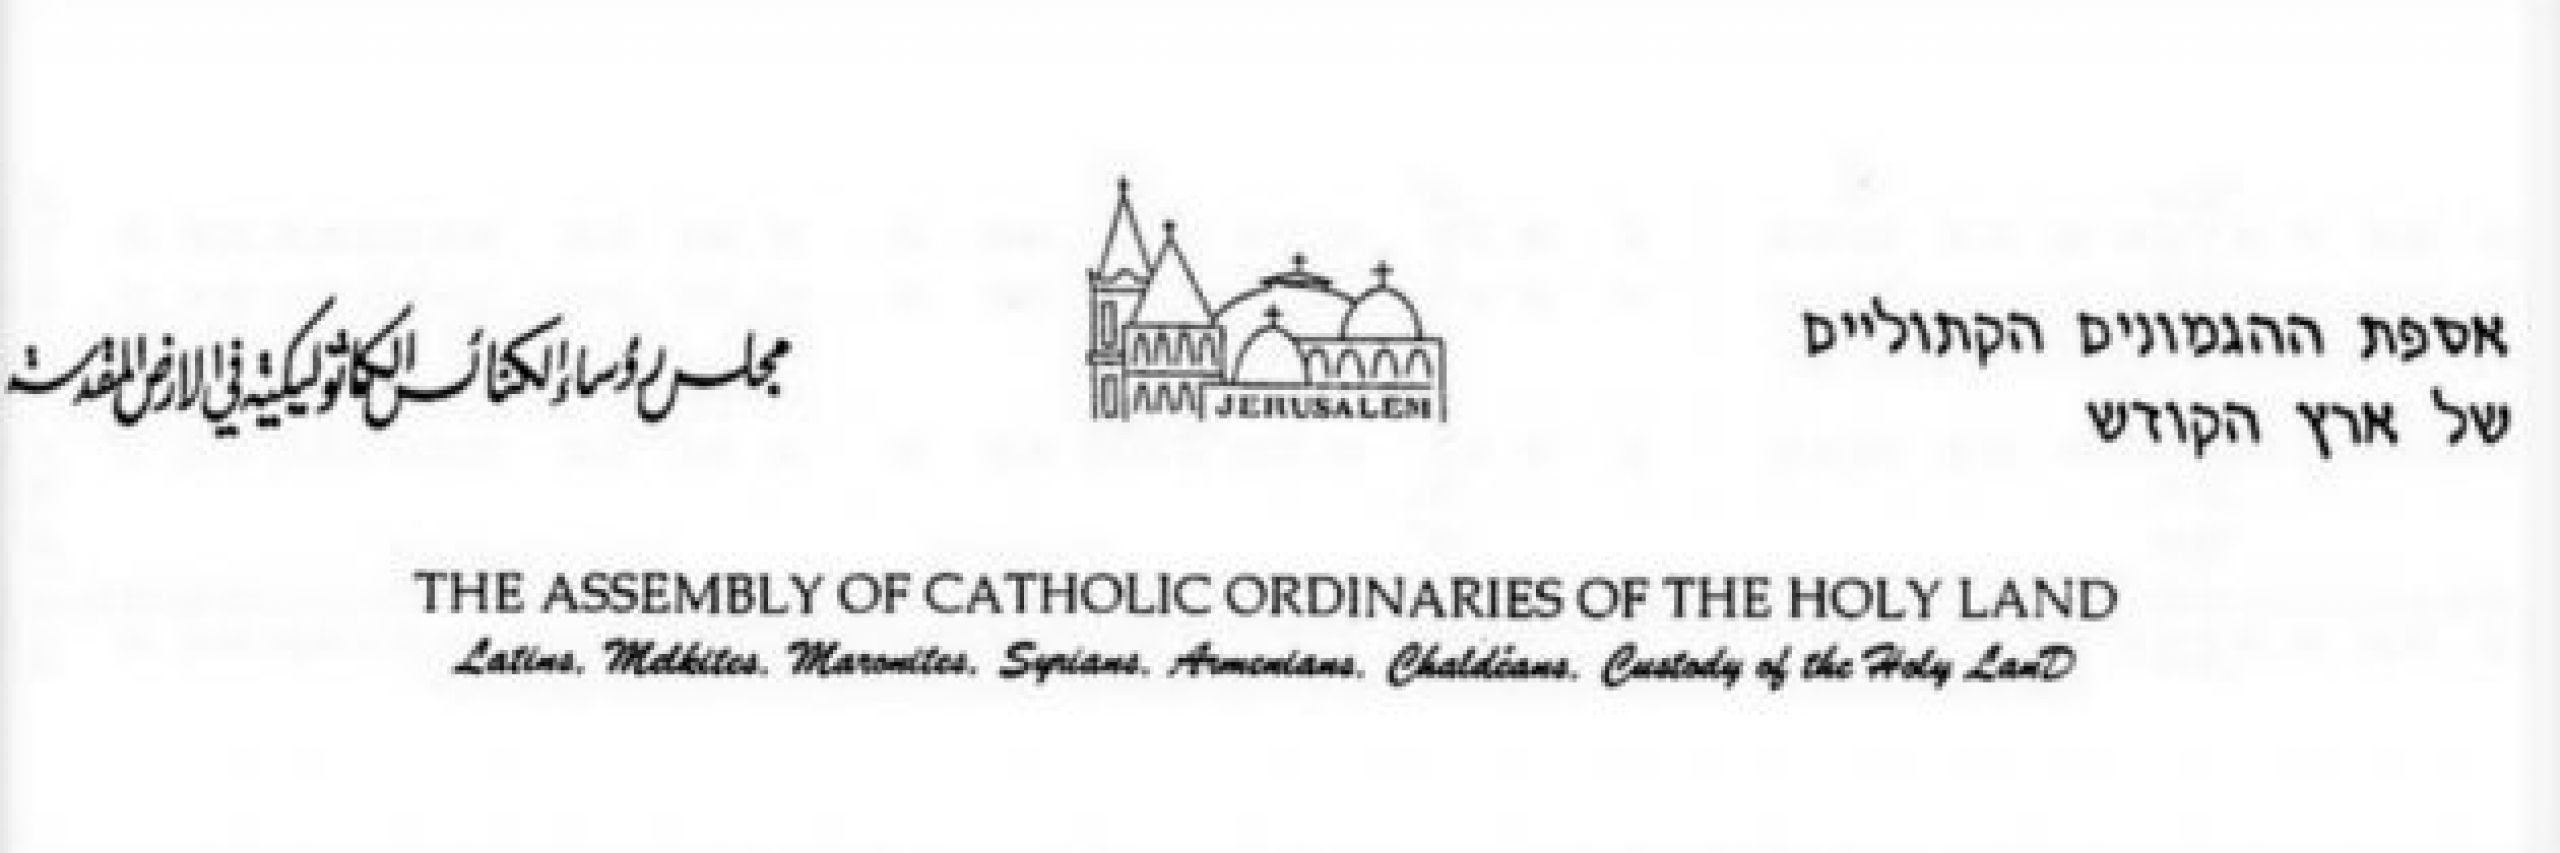 "Commission for Justice and Peace of the Assembly of Catholic Ordinaries of the Holy Land: The question of ""normalization"""